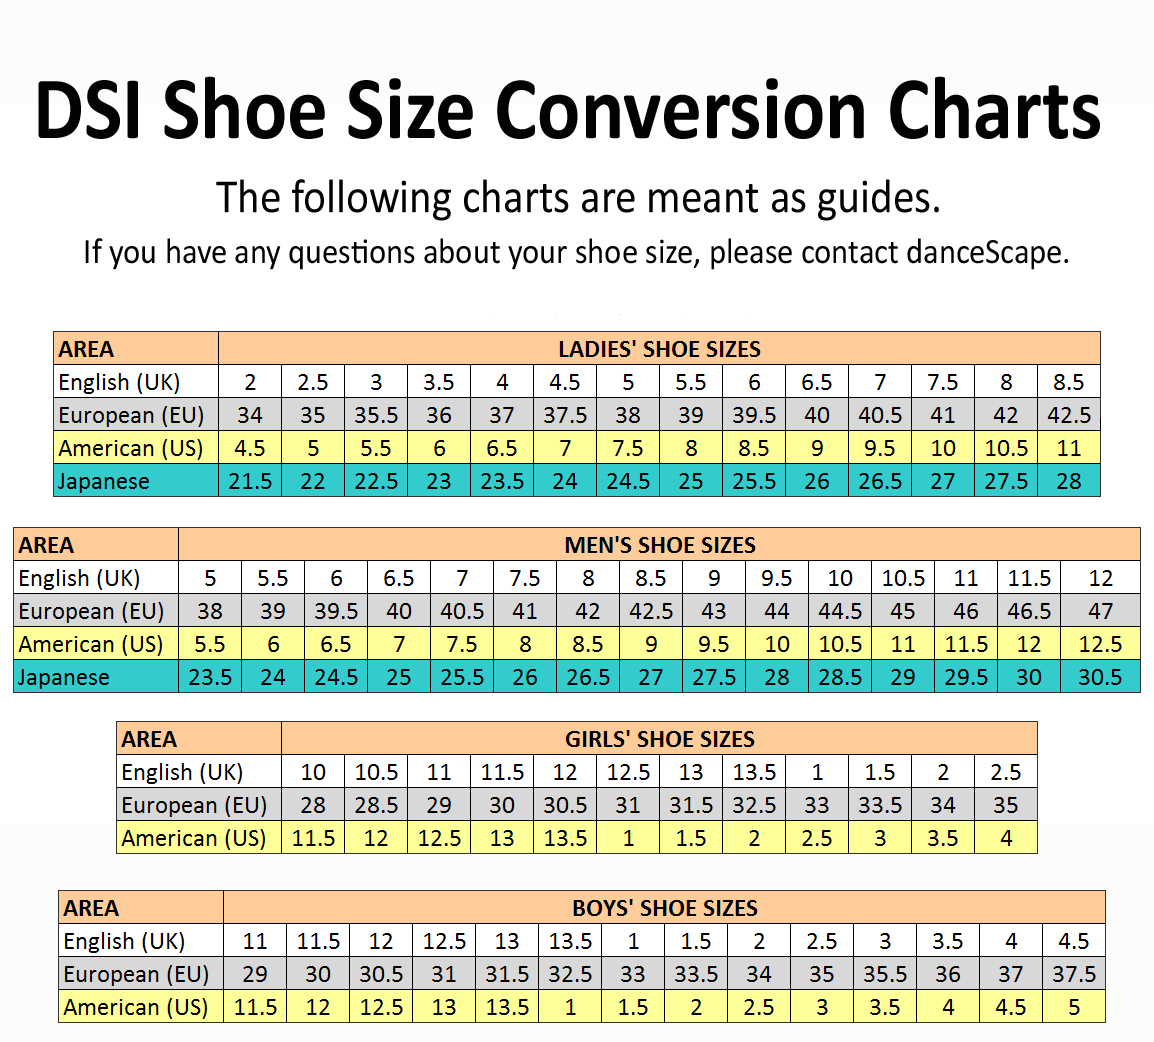 8 5 shoe size in europe shoes for yourstyles uk shoe size chart images men and women geenschuldenfo Choice Image